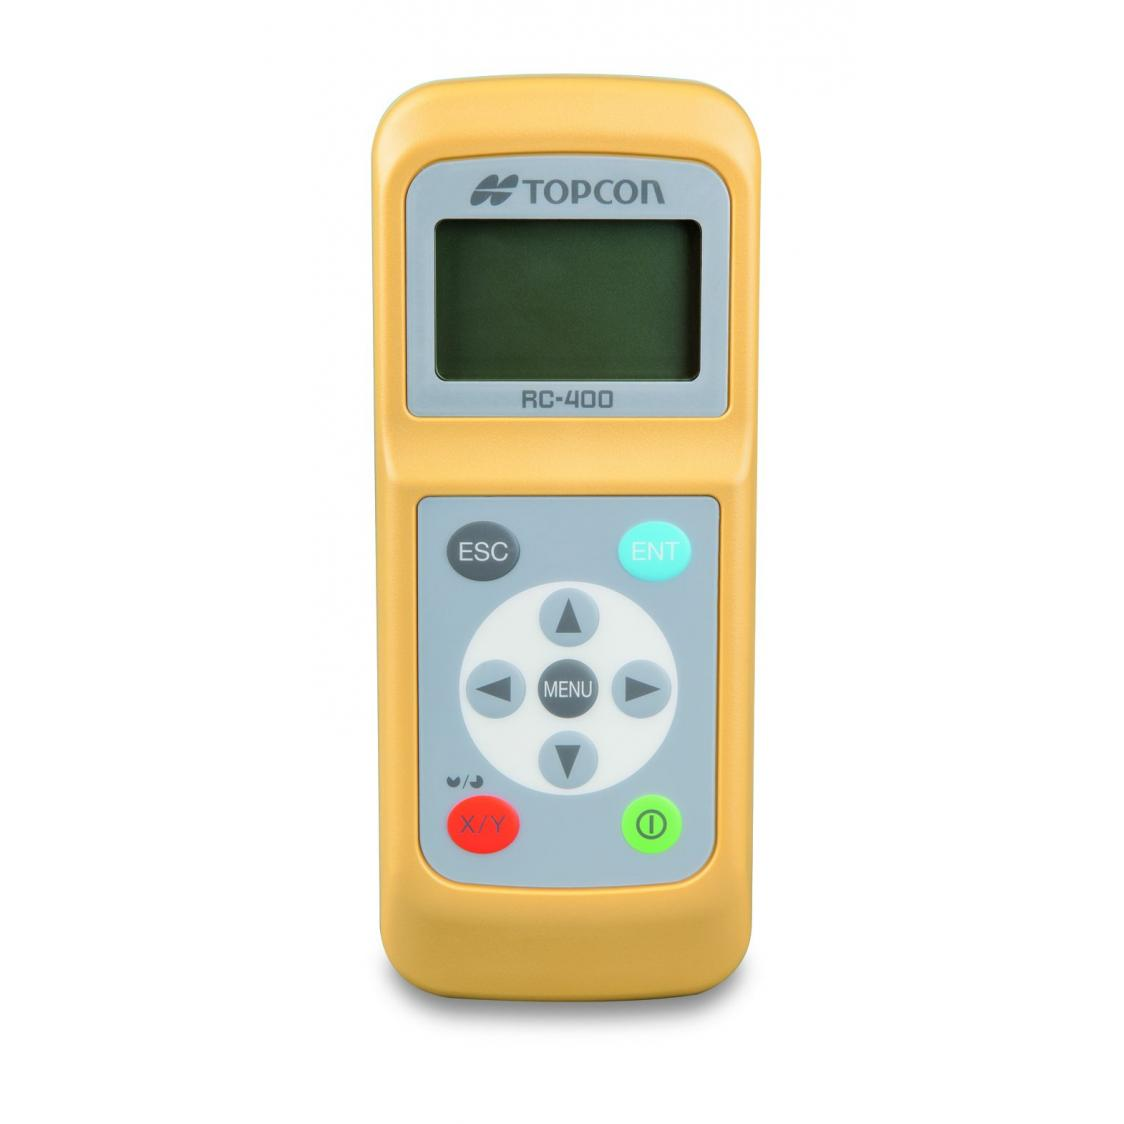 Topcon RC-400 Remote Control for RL-200 Series Slope Laser